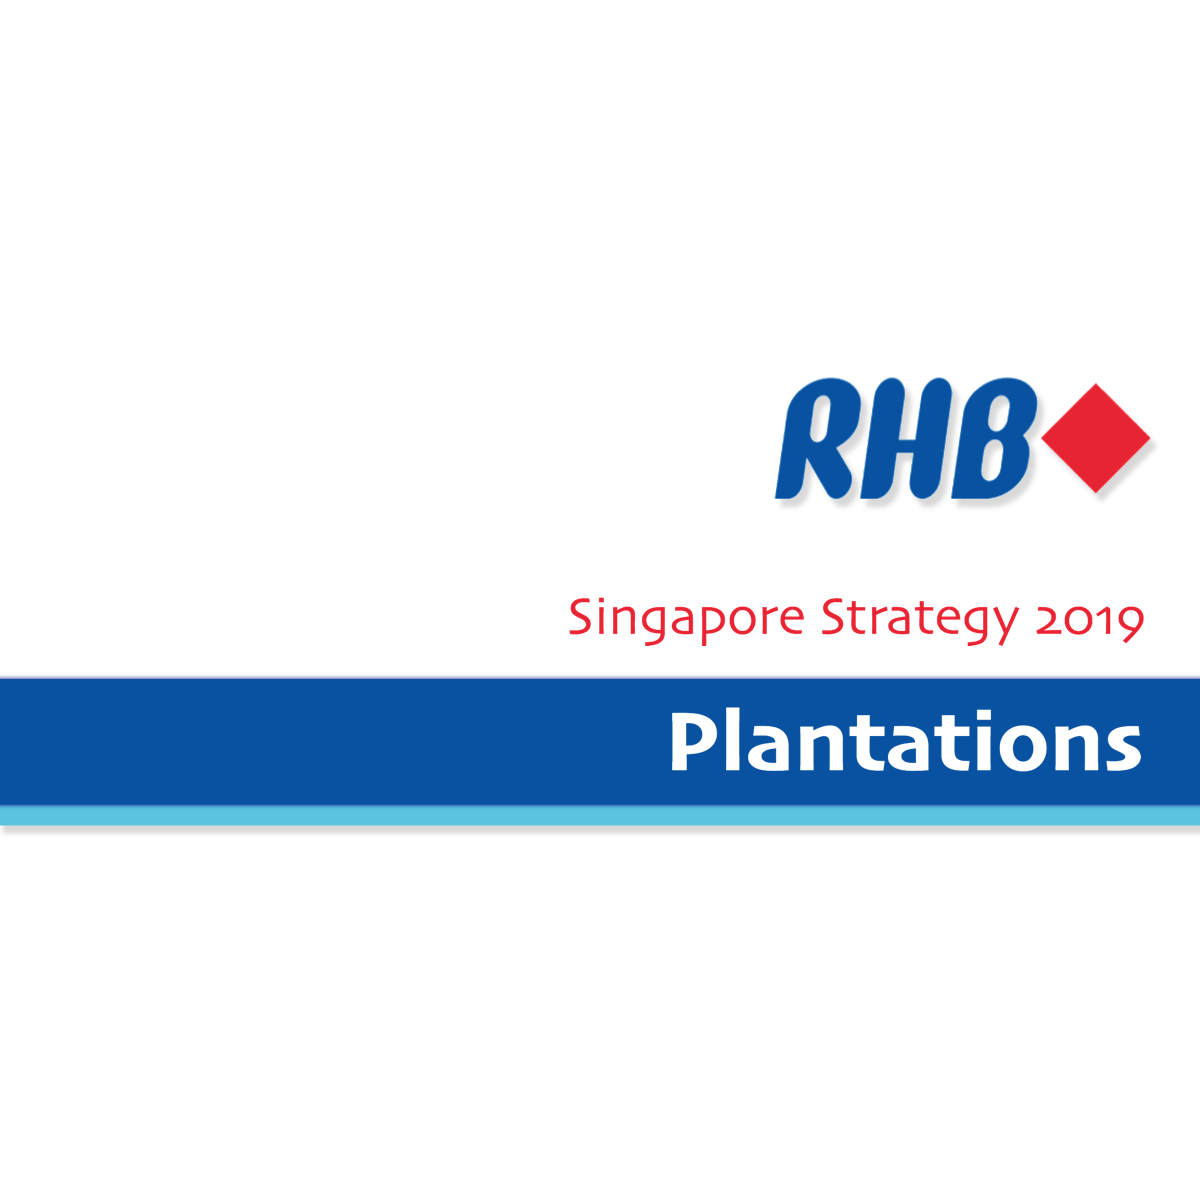 Singapore Strategy 2019 ~ Plantation Sector - RHB Research | SGinvestors.io